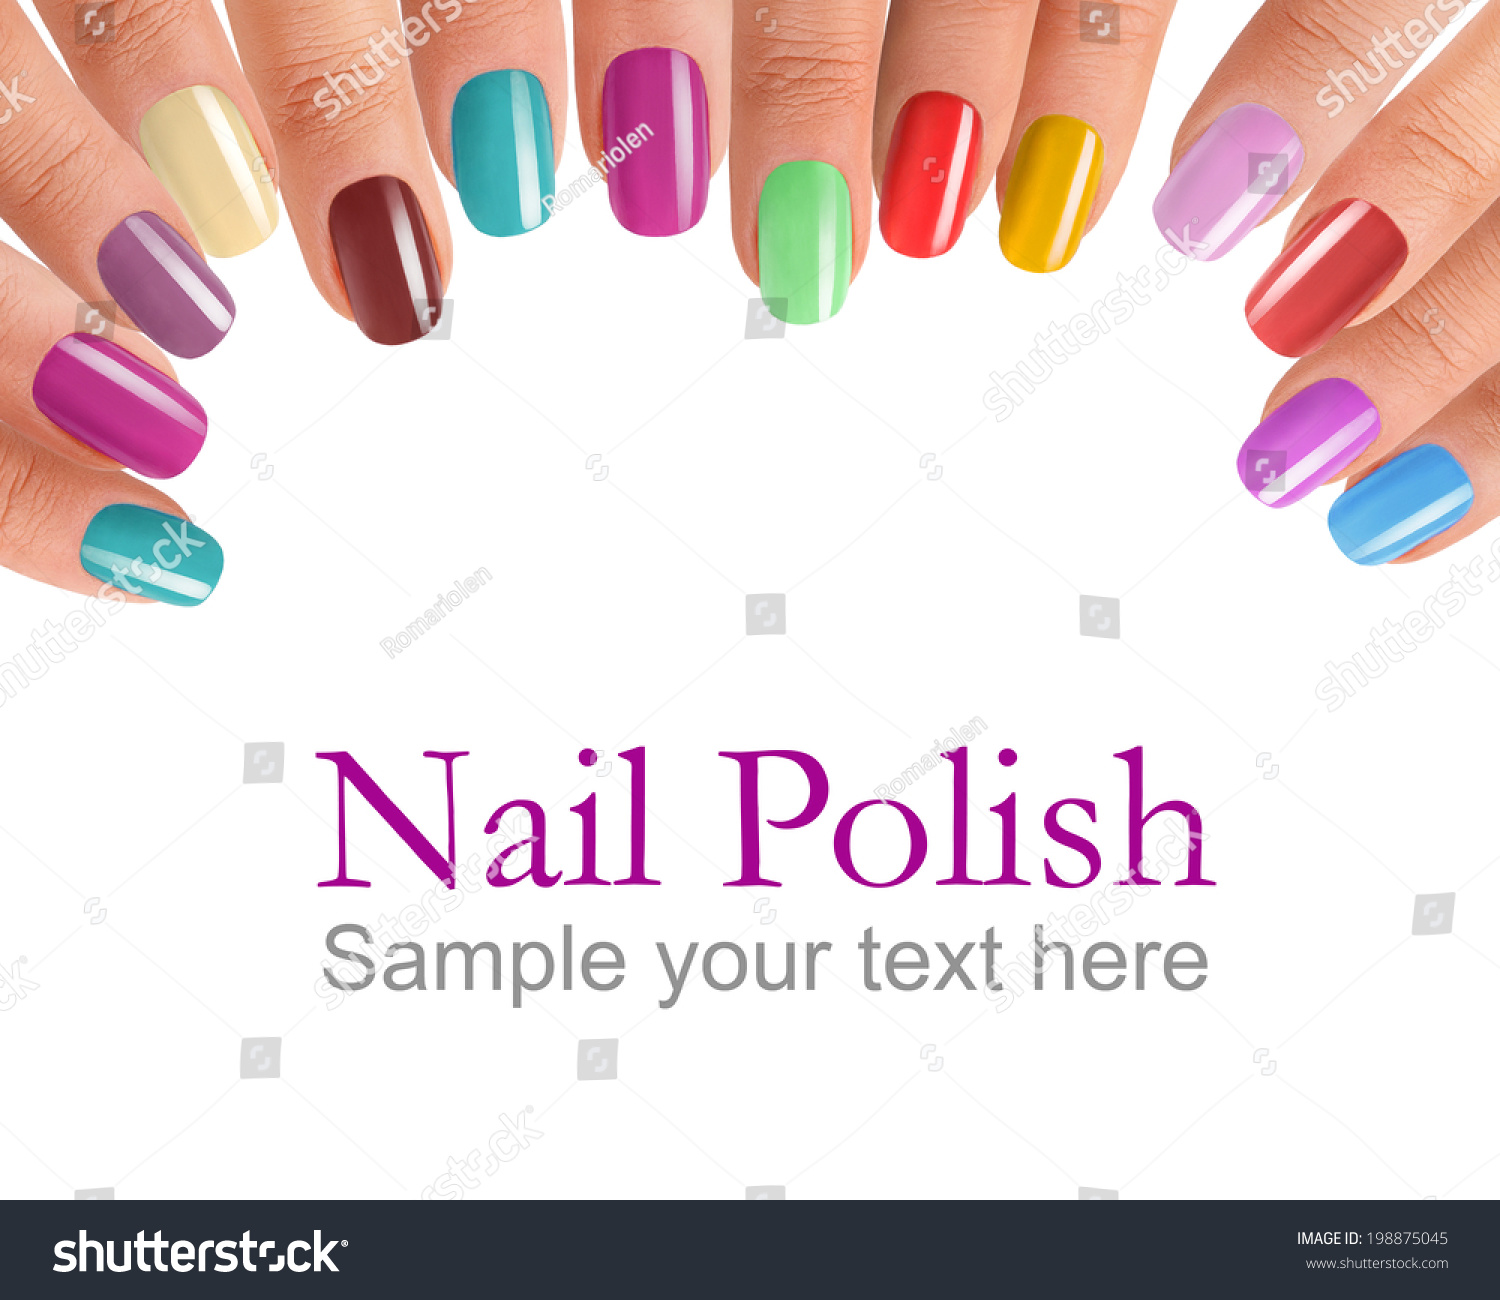 Royalty-free Fingers with colorful nail polish /… #198875045 Stock ...